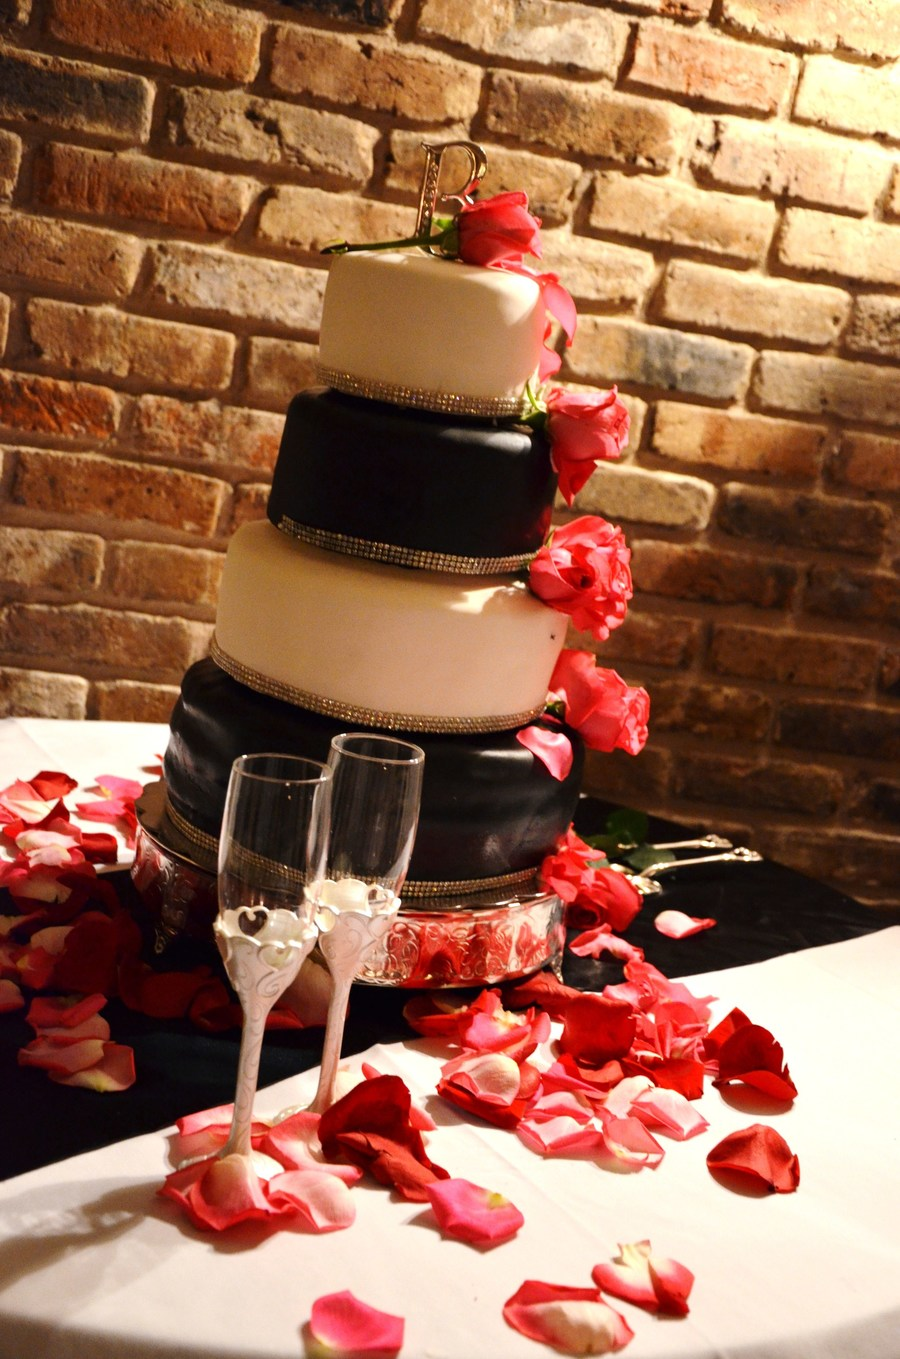 Black And White Wedding Cake With A Small Bit Of Cake Bling Around The Bottom And Pink Roses To Match The Wedding Colors on Cake Central